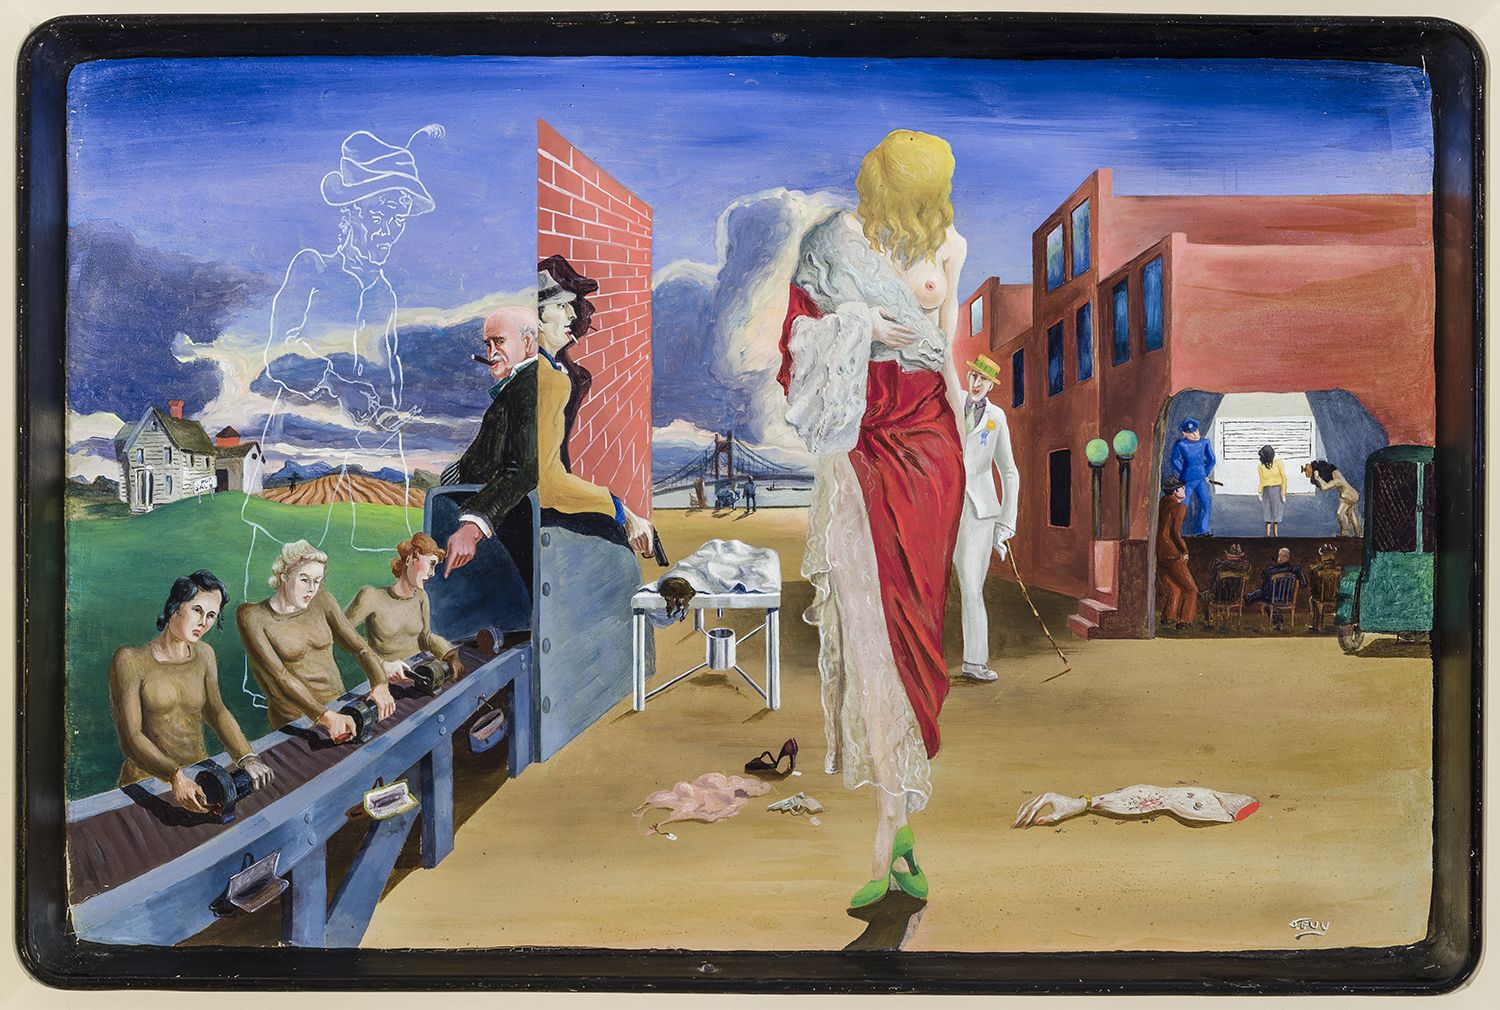 James Guy (1909–1983). Dead End, about 1939. Oil on metal tray, 11 3/4 x 17 3/4 in.